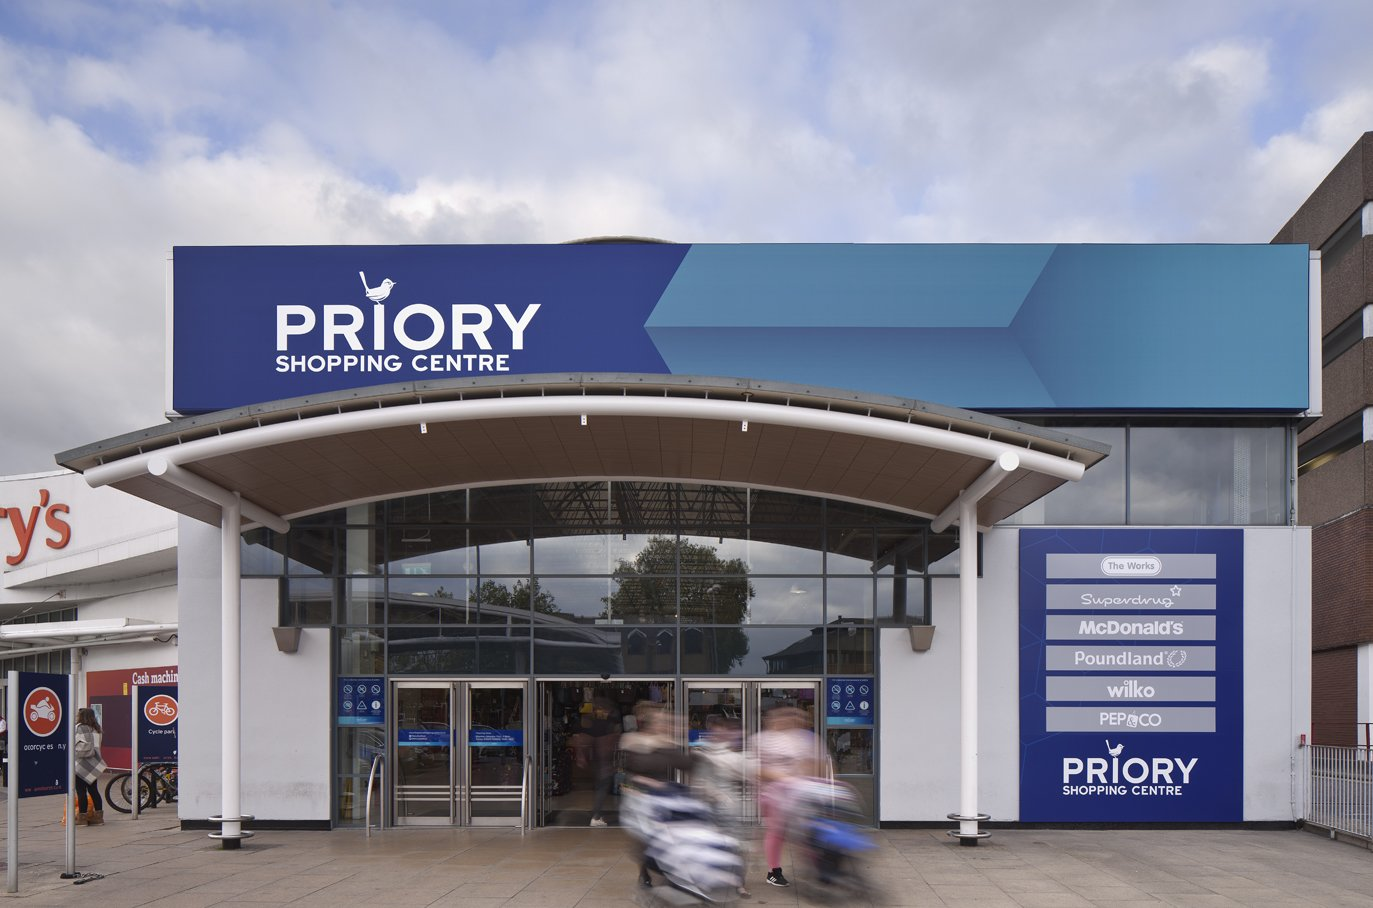 Exterior design of the entrance to Priory shopping centre